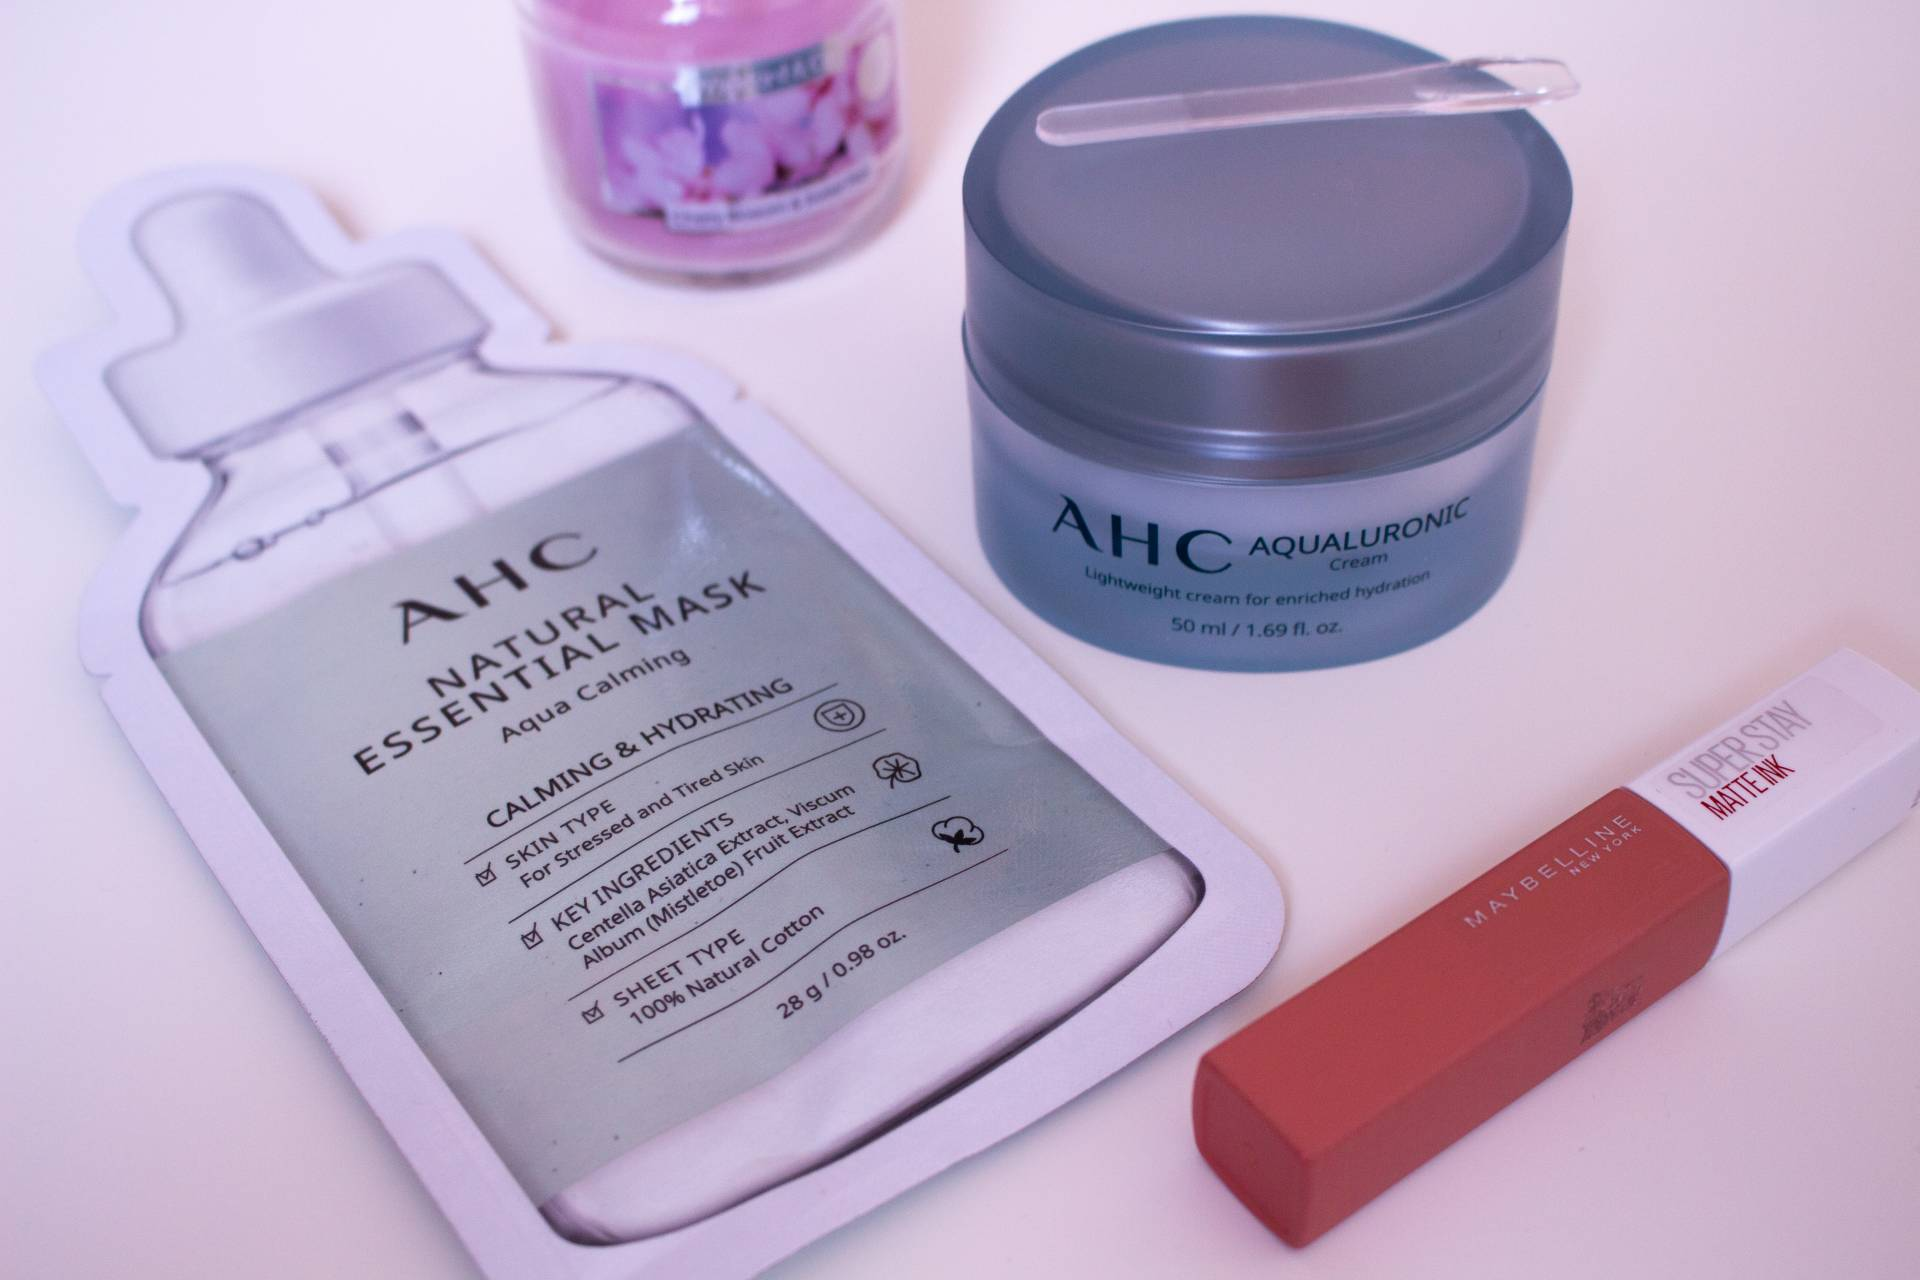 AHC Beauty Aqualuronic Cream and Calming Mask on flatlay